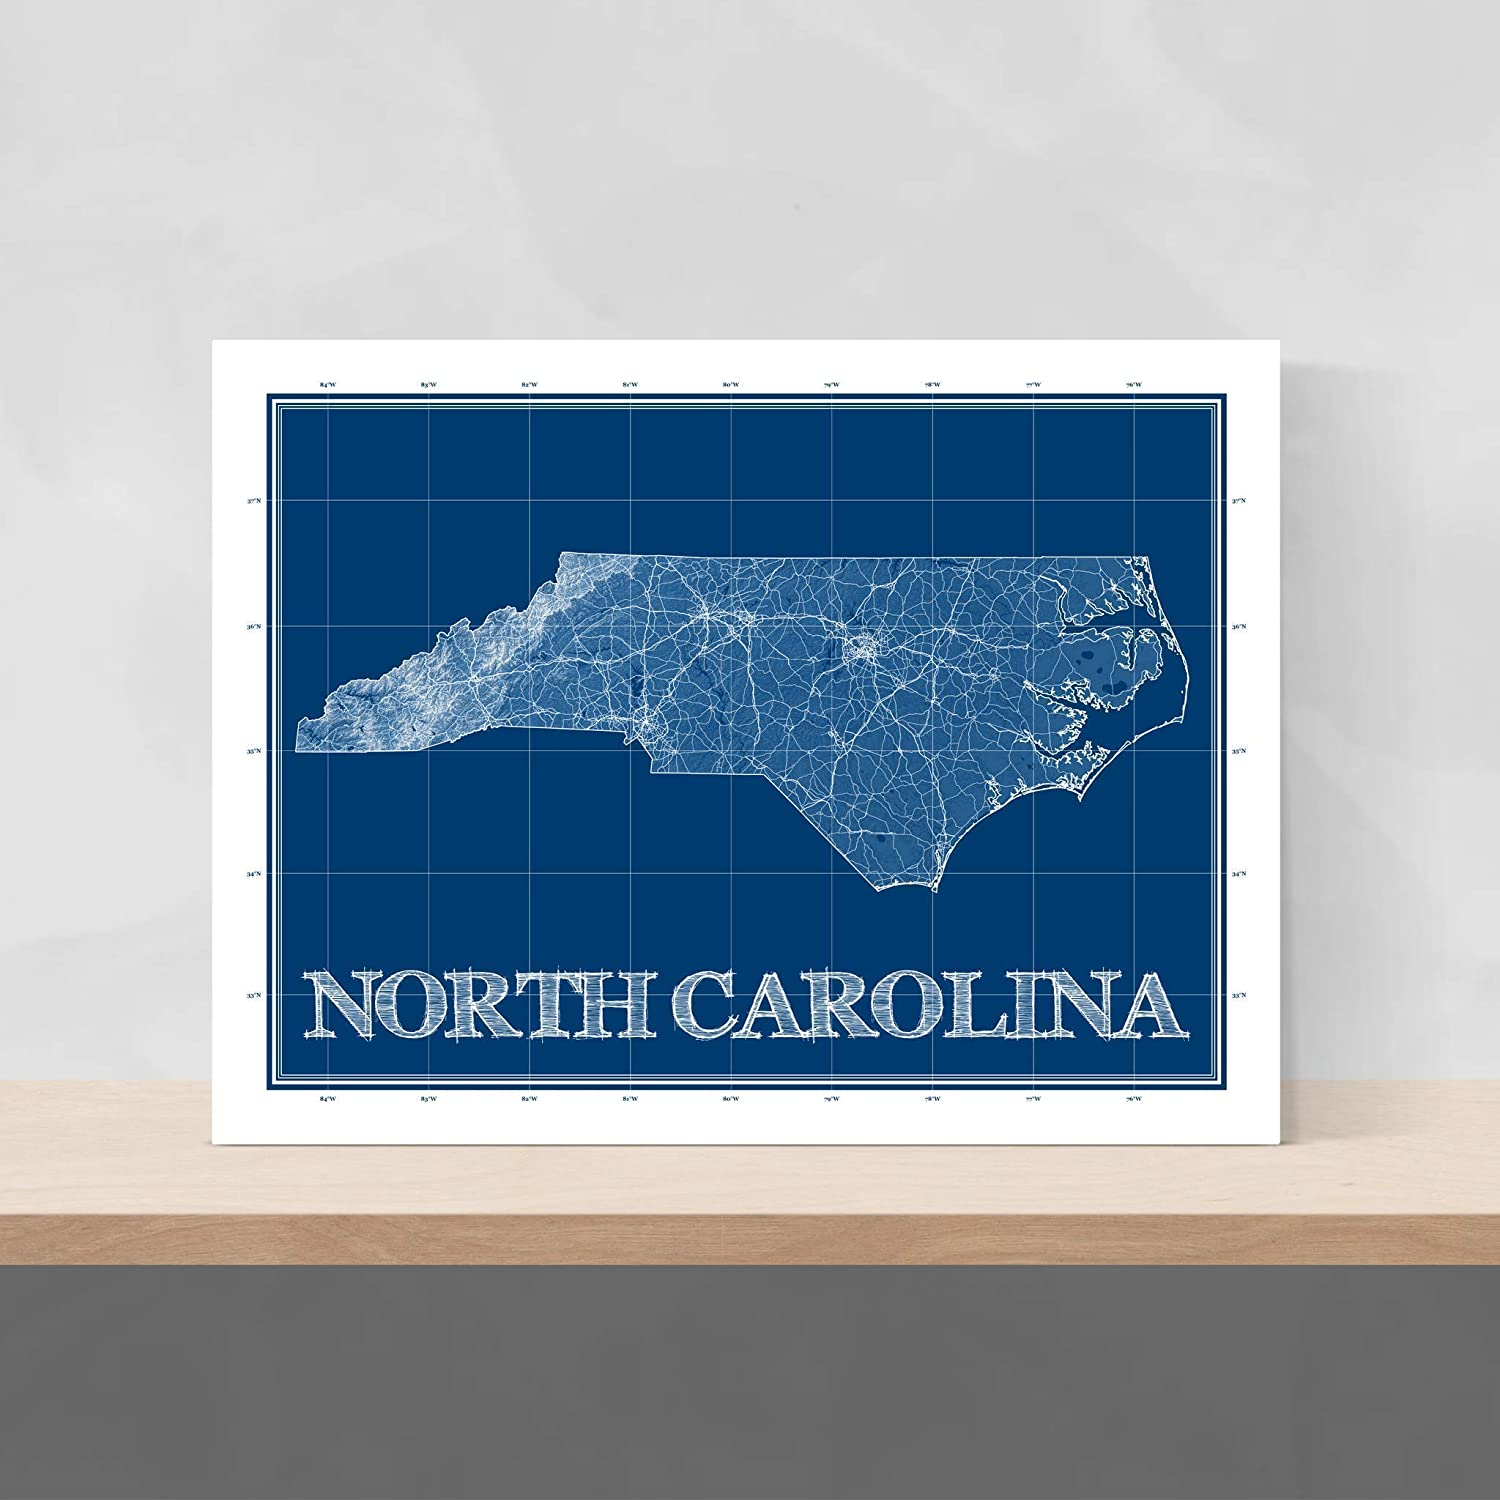 Amazon Com North Carolina Wall Art Print 8x10 Blueprint North Carolina Map Poster 24x36 Handmade Navy Blue North Carolina State Patent Prints North Carolina Gifts By Maps As Art Handmade